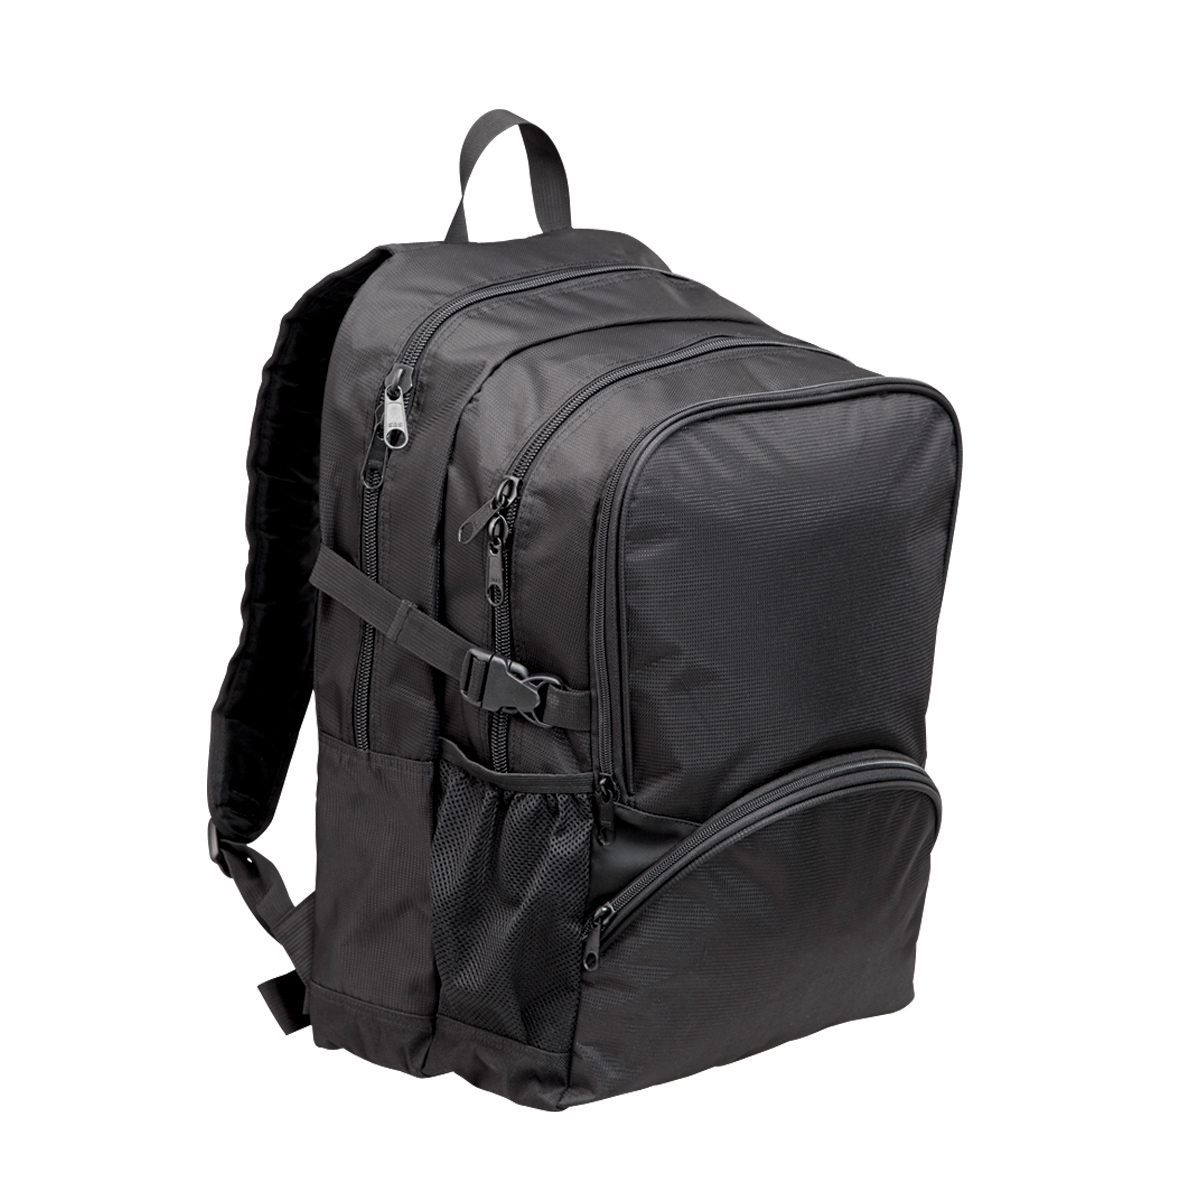 Titan Heavy Duty Backpack